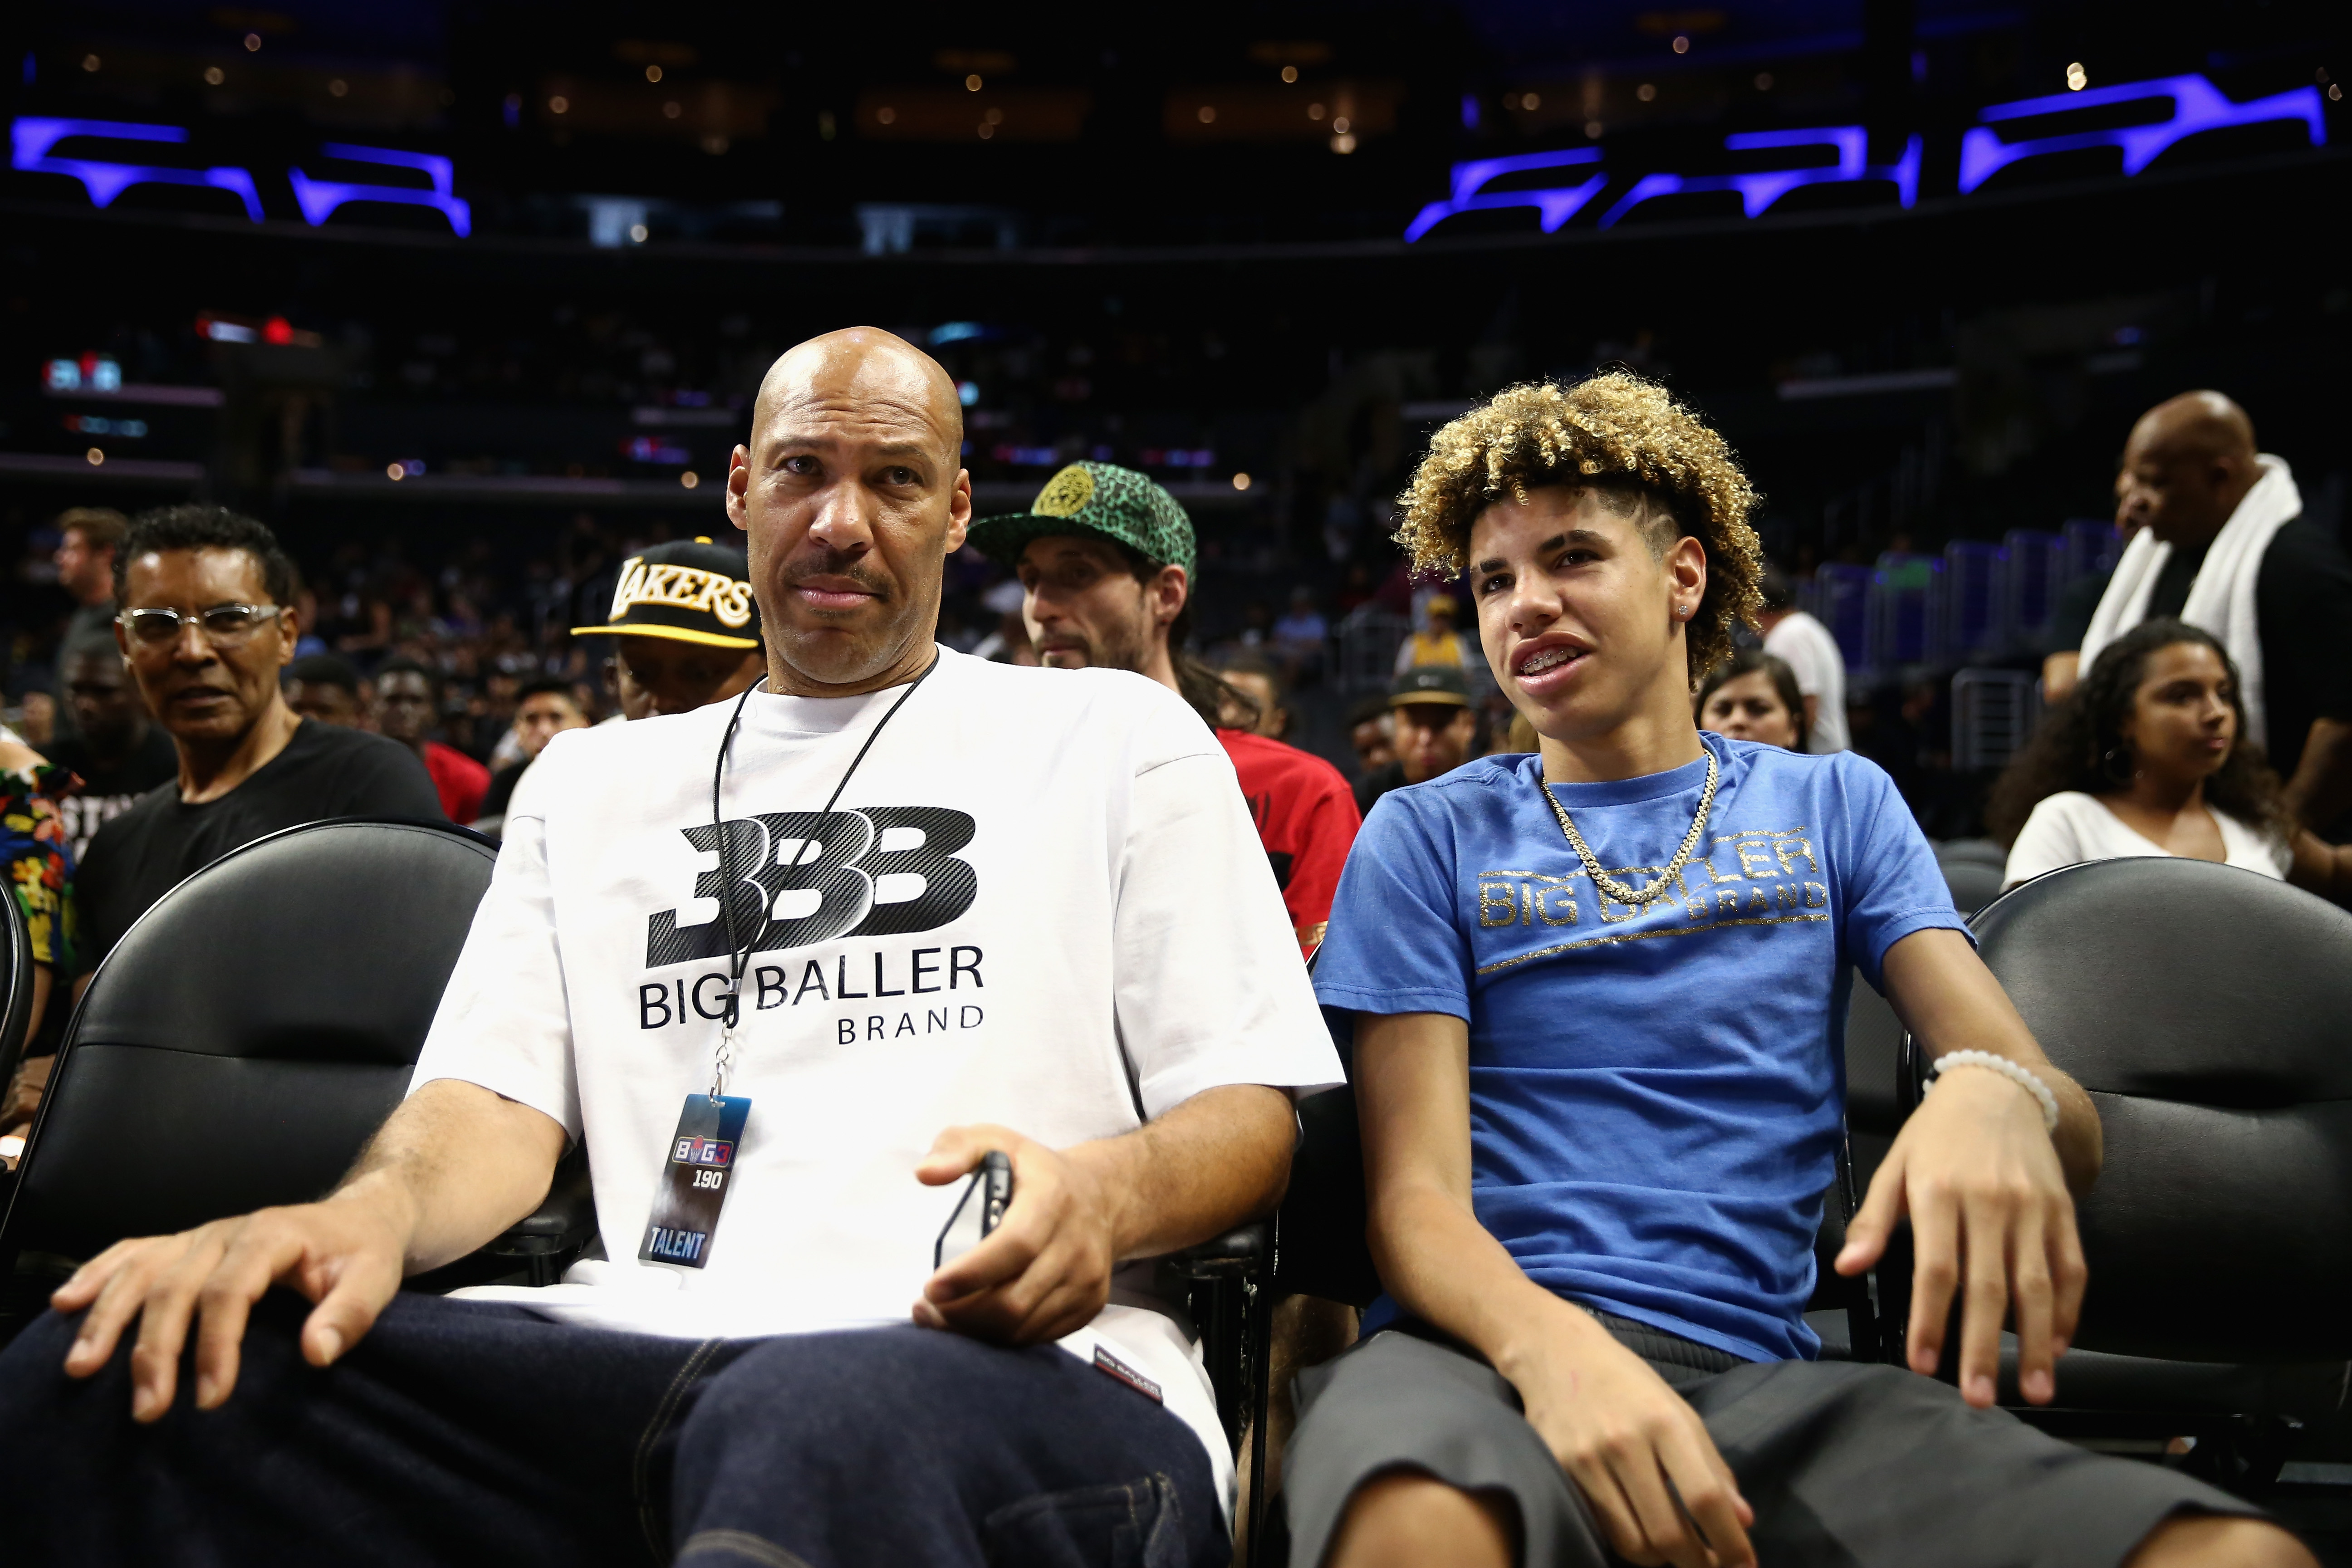 LaVar Ball wants shoe deal over college eligibility for his son